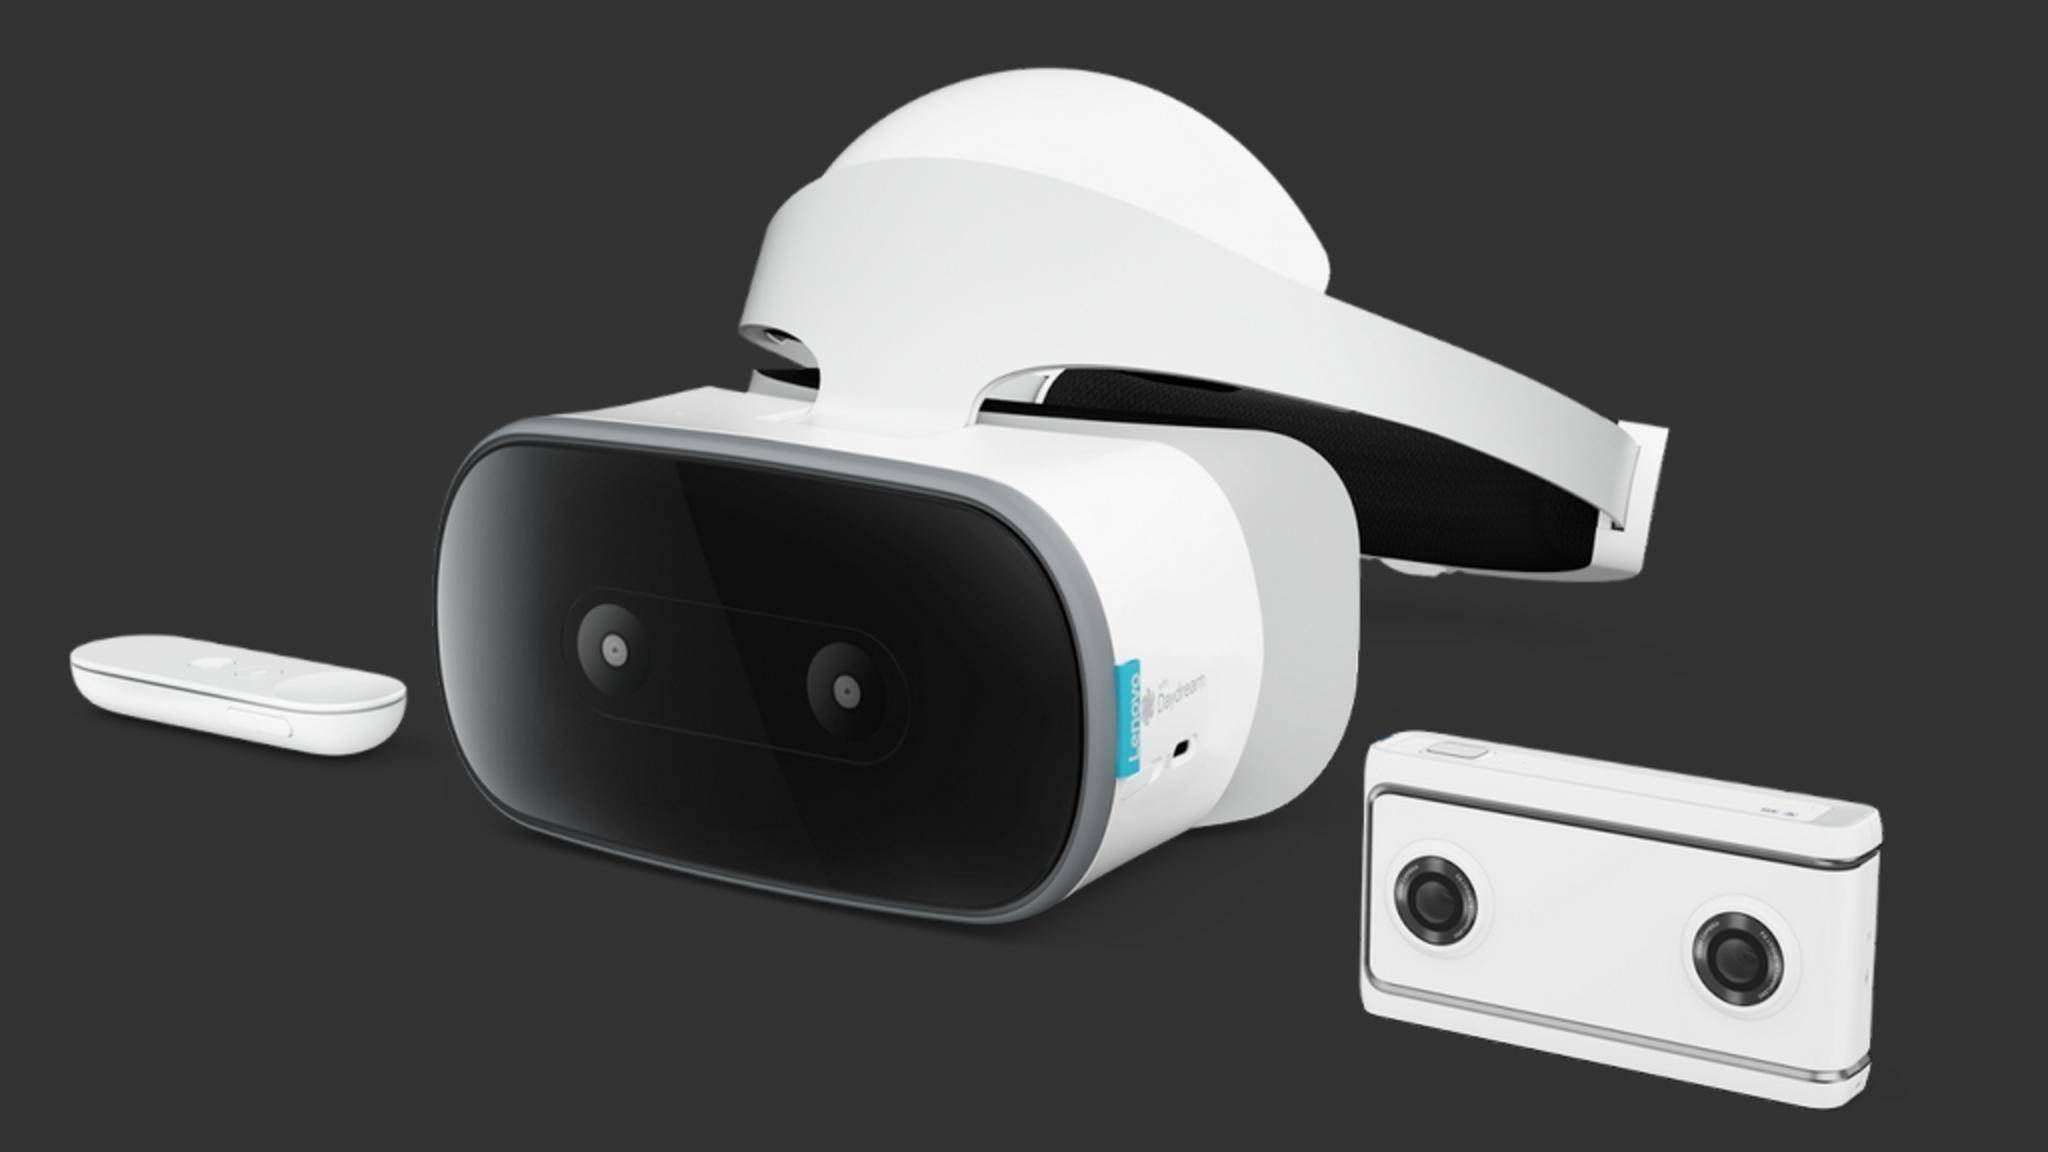 Lenovo Mirage Solo: Stand-Alone-DayDreamView-Headset vorgestellt